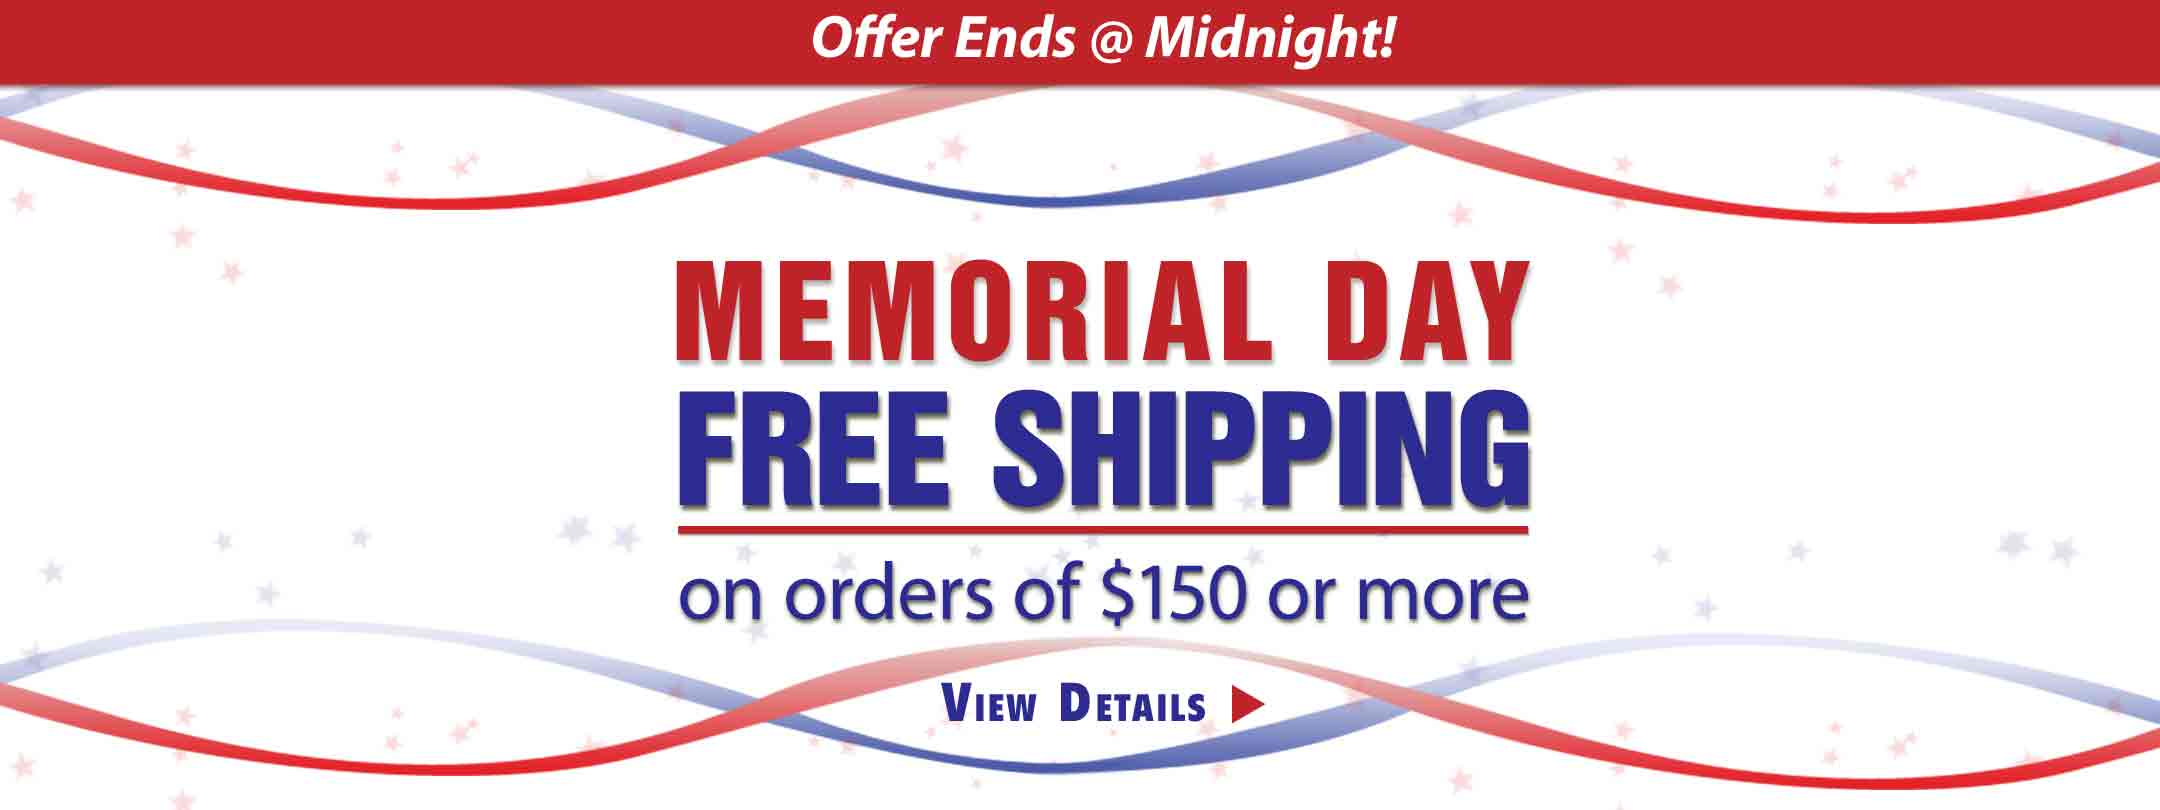 Memorial Day Free Shipping with Promo Code